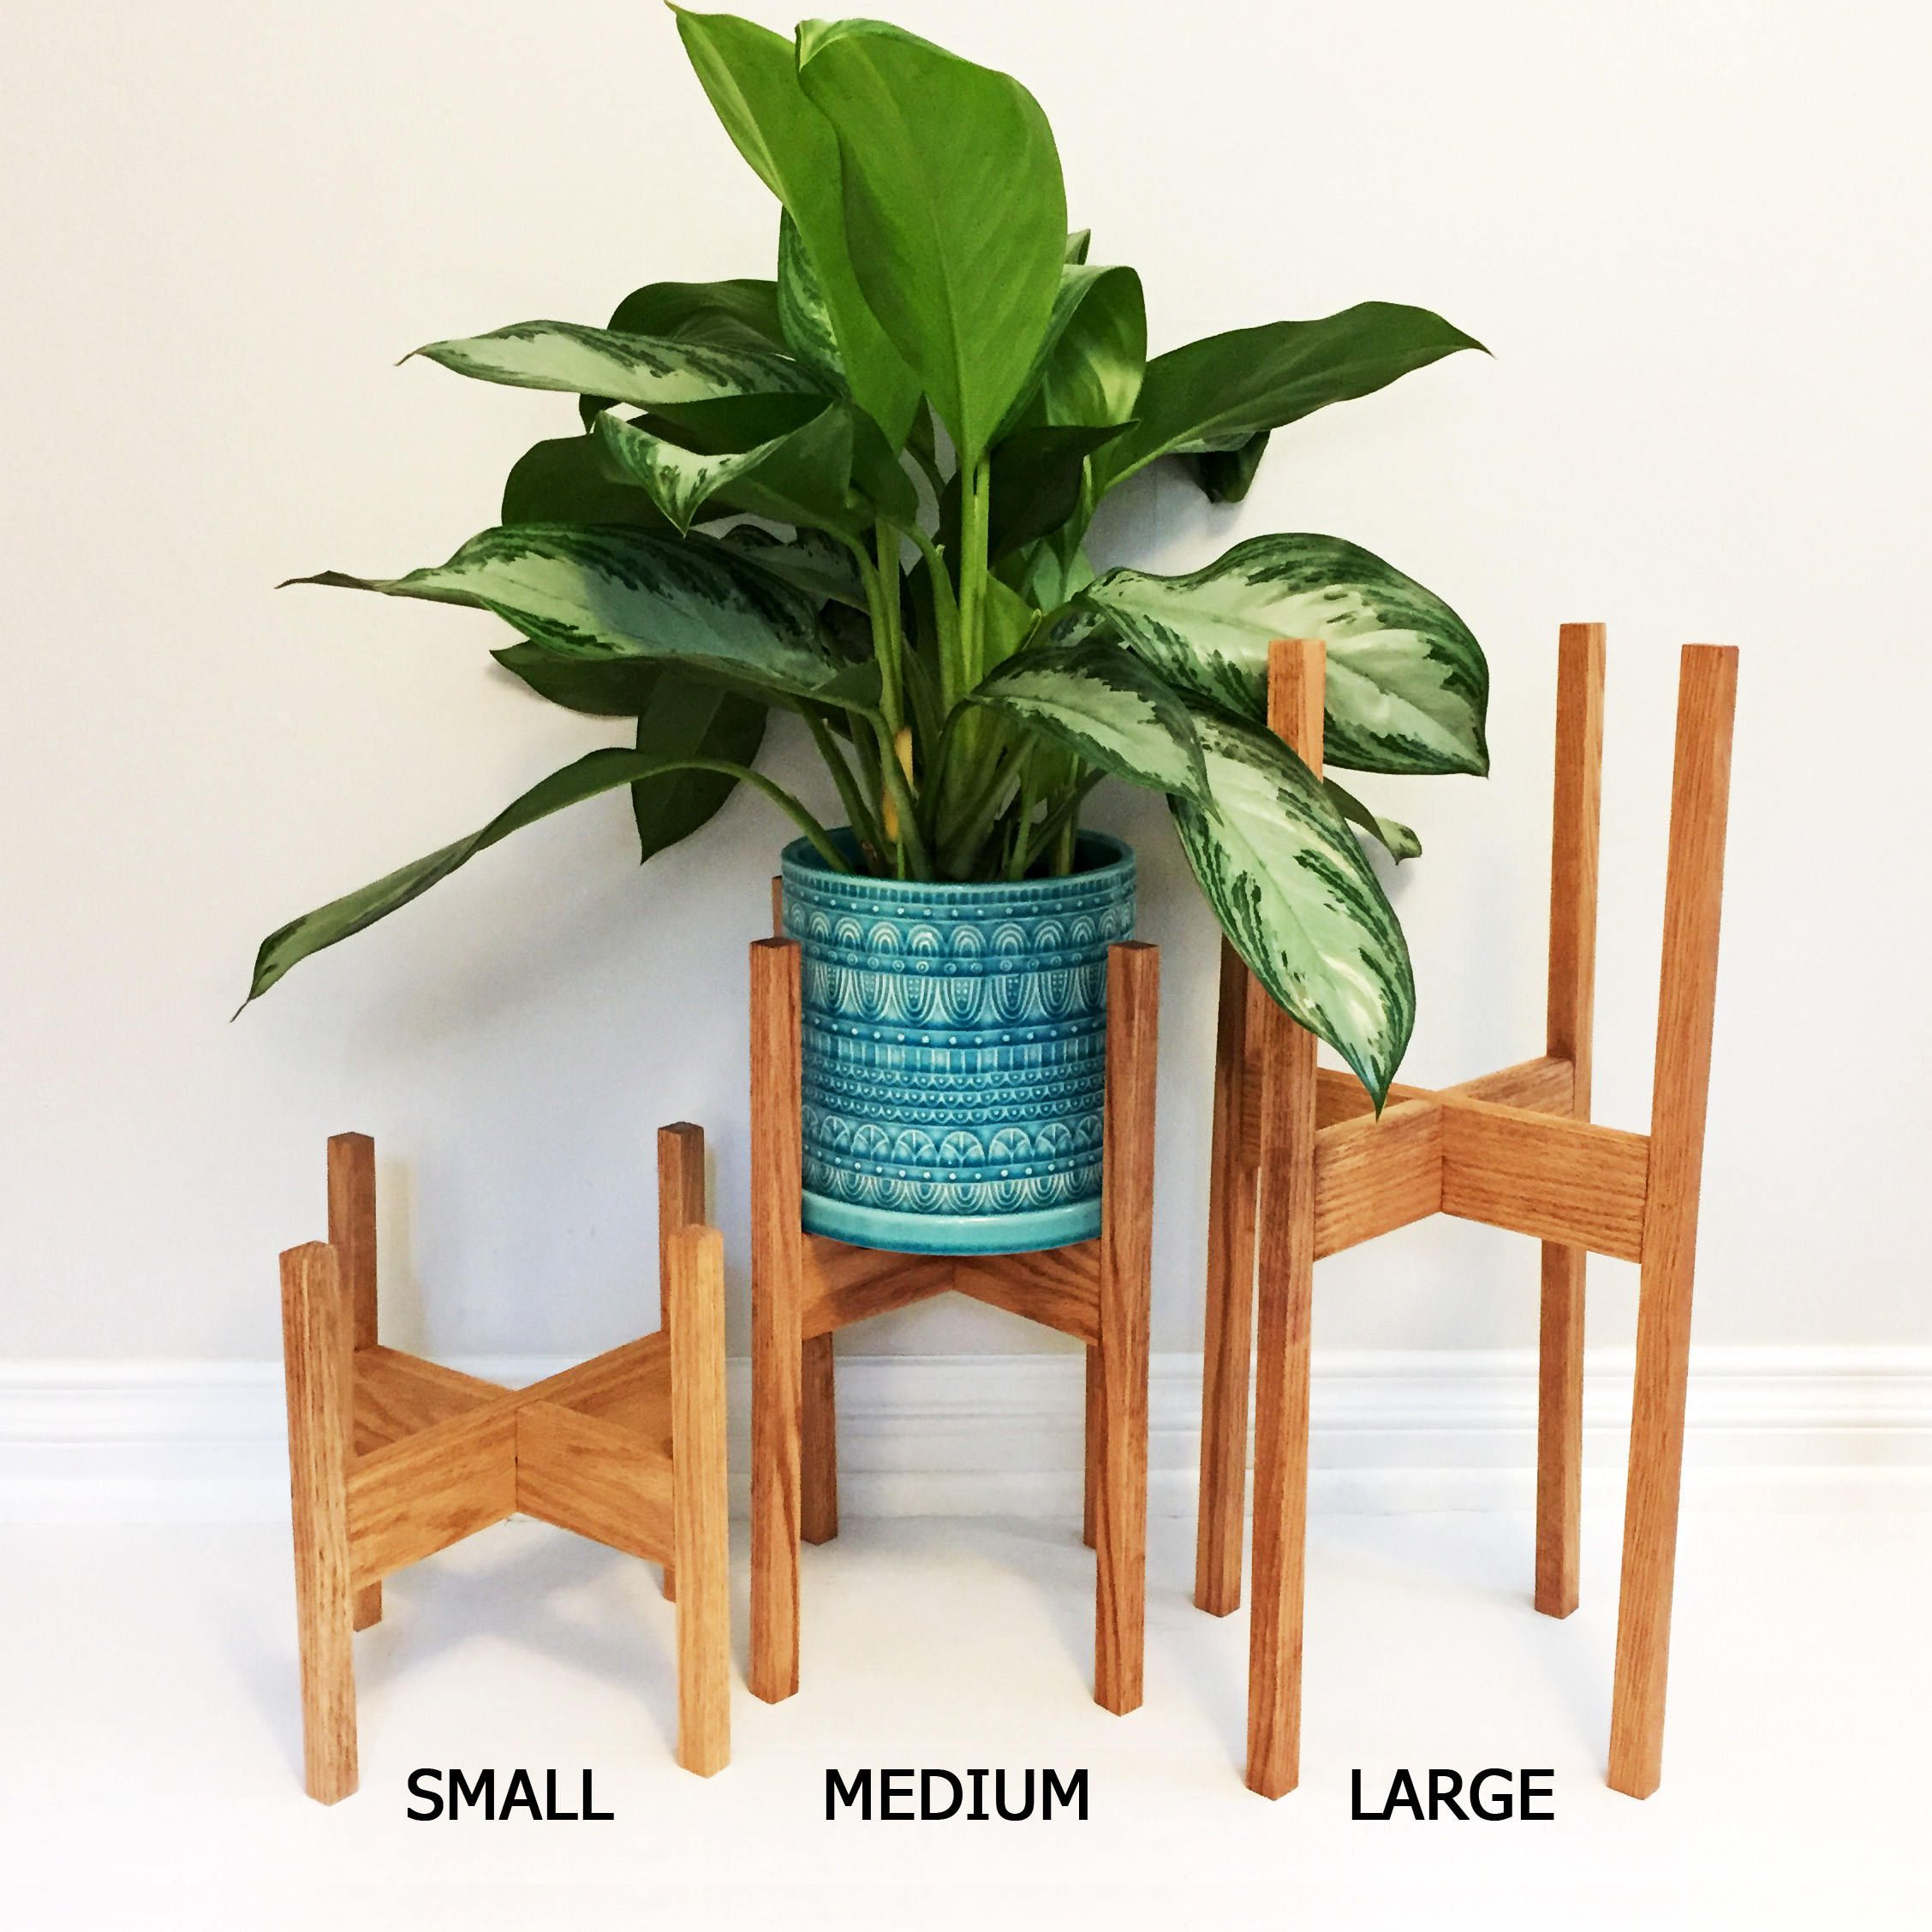 Our Smallest Mid Century Modern Inspired Plant Stand Is Still 12